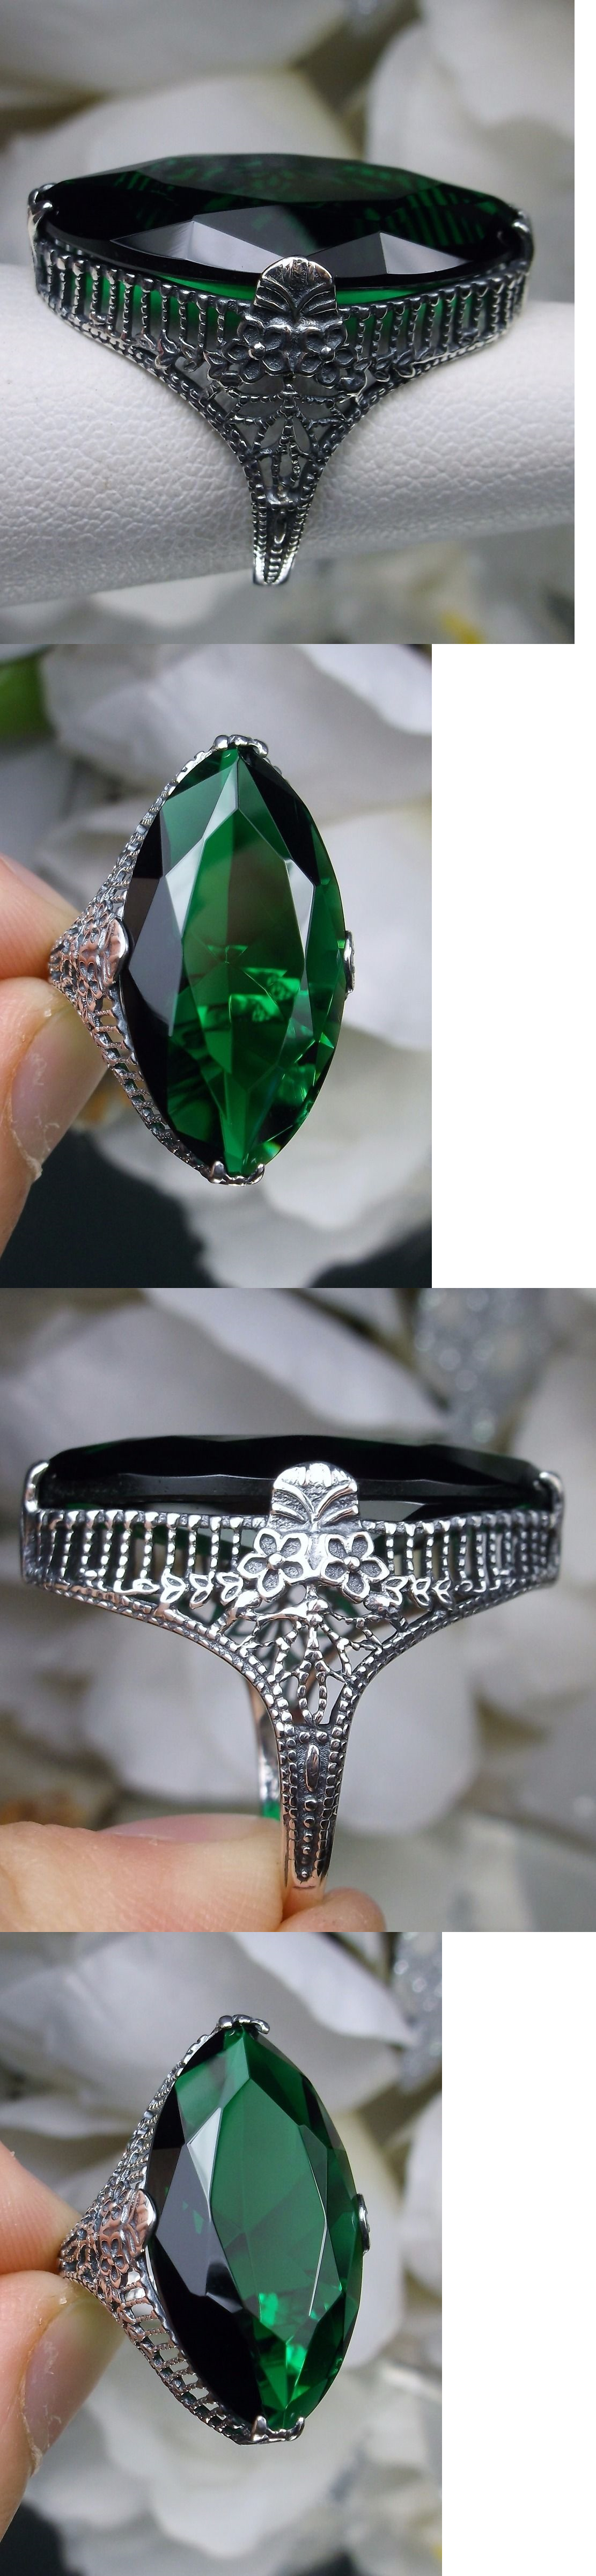 Rings 52603: 13Ct Marquise*Green Emerald* Floral Filigree Sterling Silver Ring Size Any Mto -> BUY IT NOW ONLY: $38 on eBay!